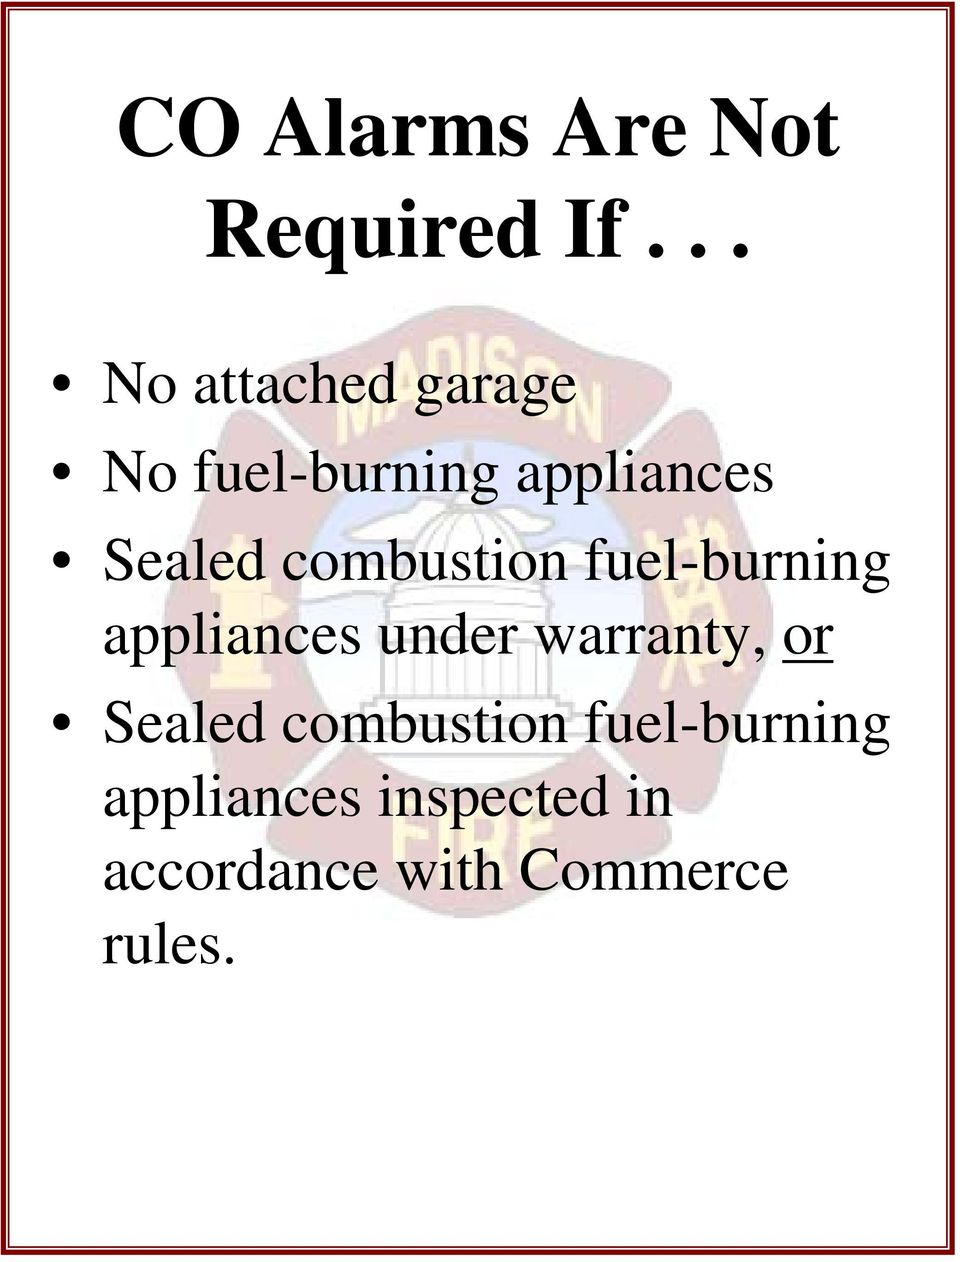 combustion fuel-burning appliances under warranty, or